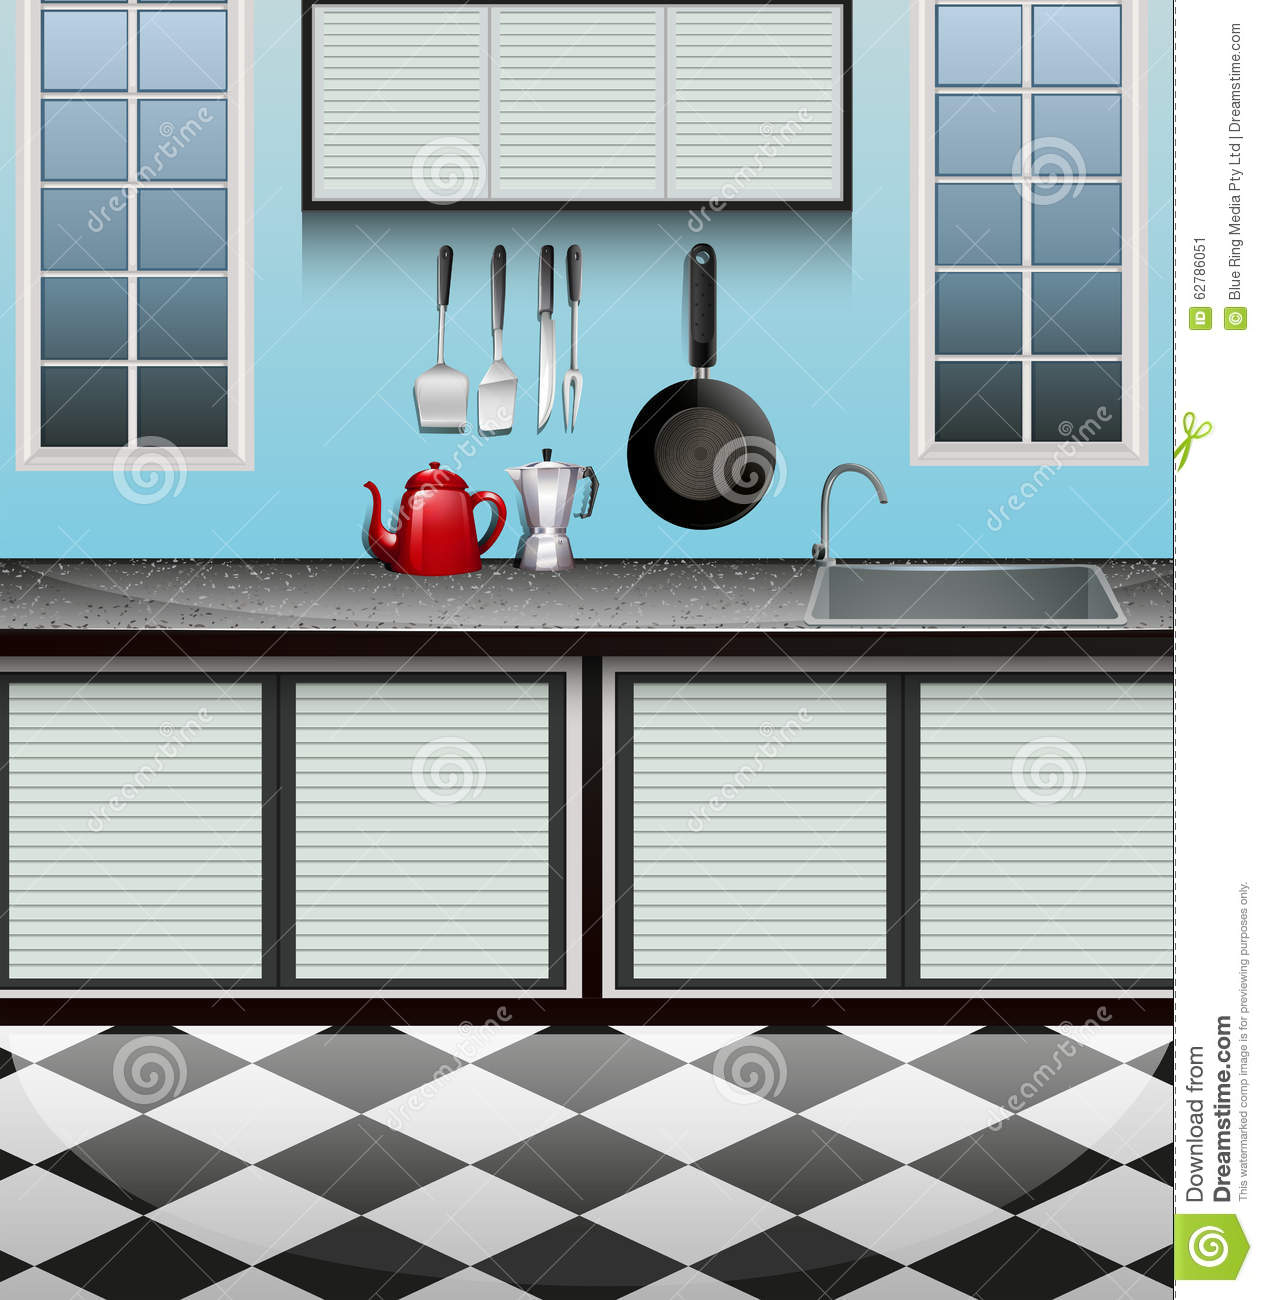 Cartoon kitchen counter gallery - Filename Kitchen Room Sink Counter Illustration 62786051 Jpg View Image